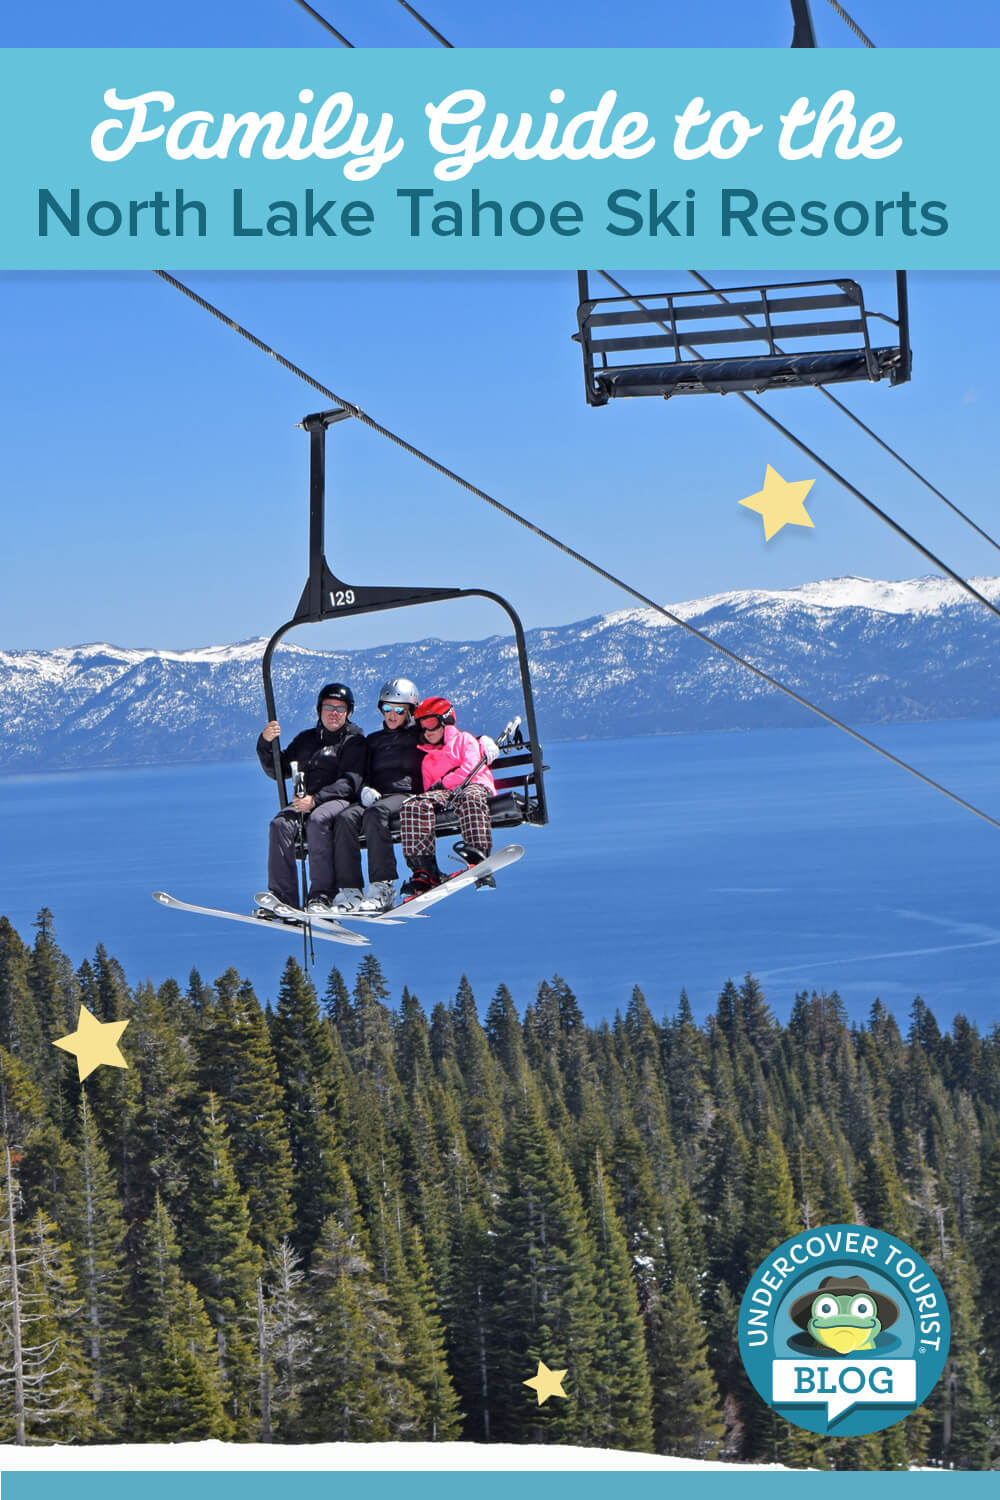 Guide to the North Lake Tahoe Ski Resorts for Families